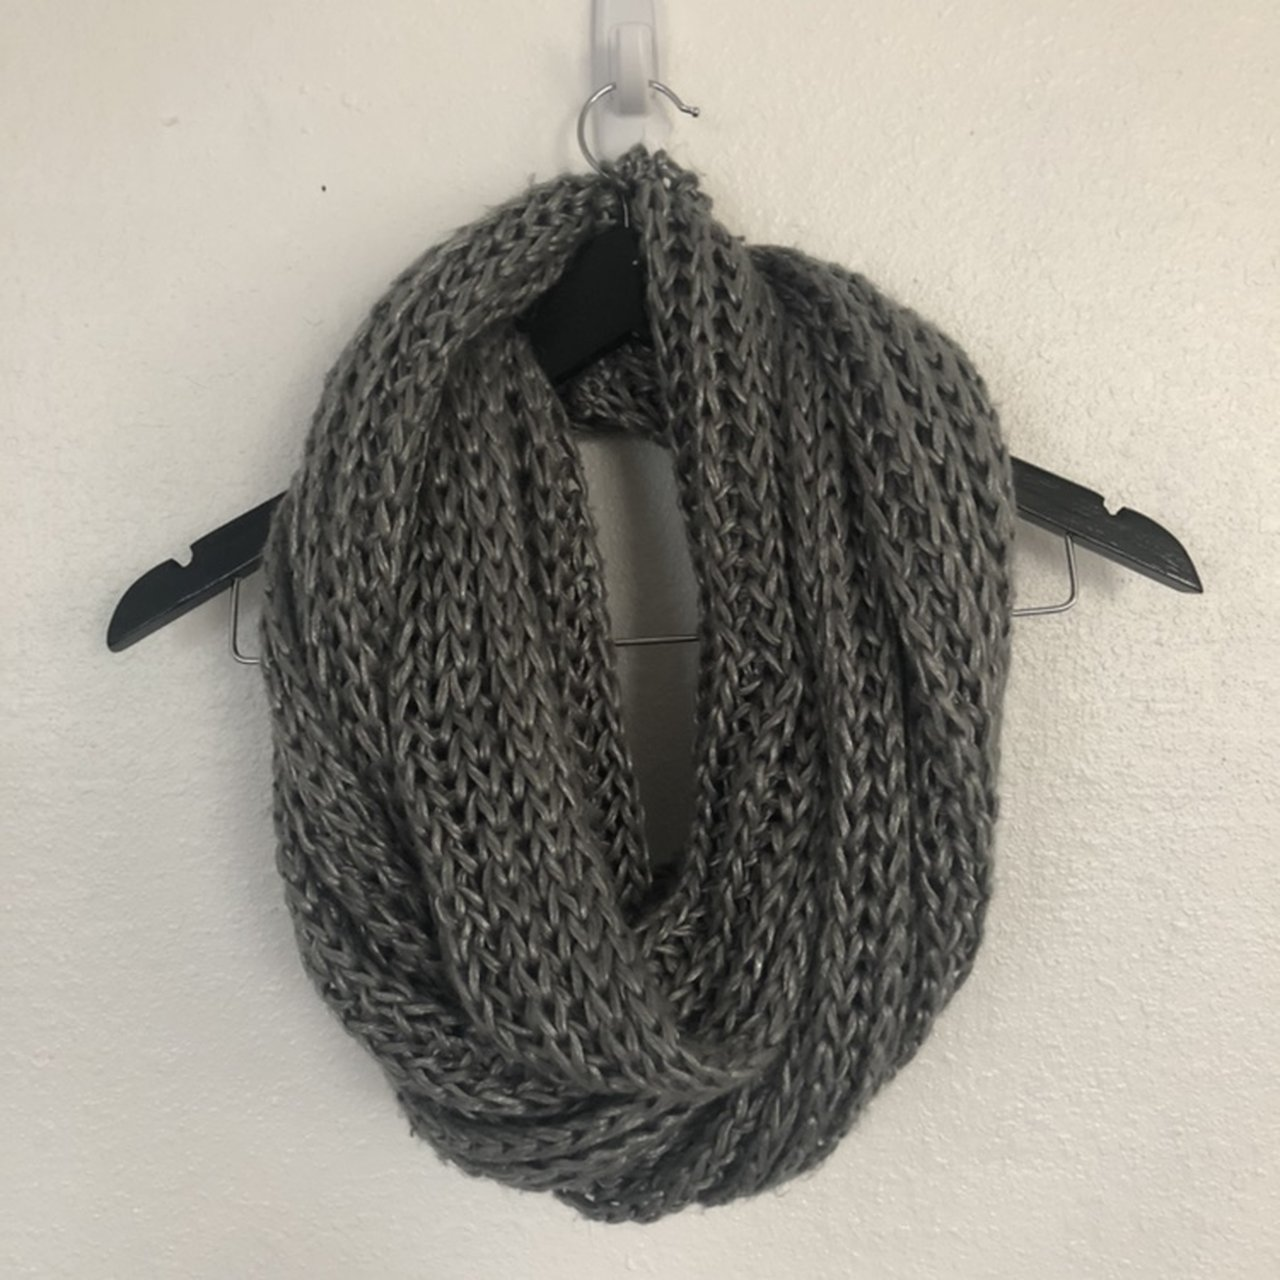 07d8ecb5b7c47 Grey Infinity Scarf. In Used Condition. Has a stretched out - Depop